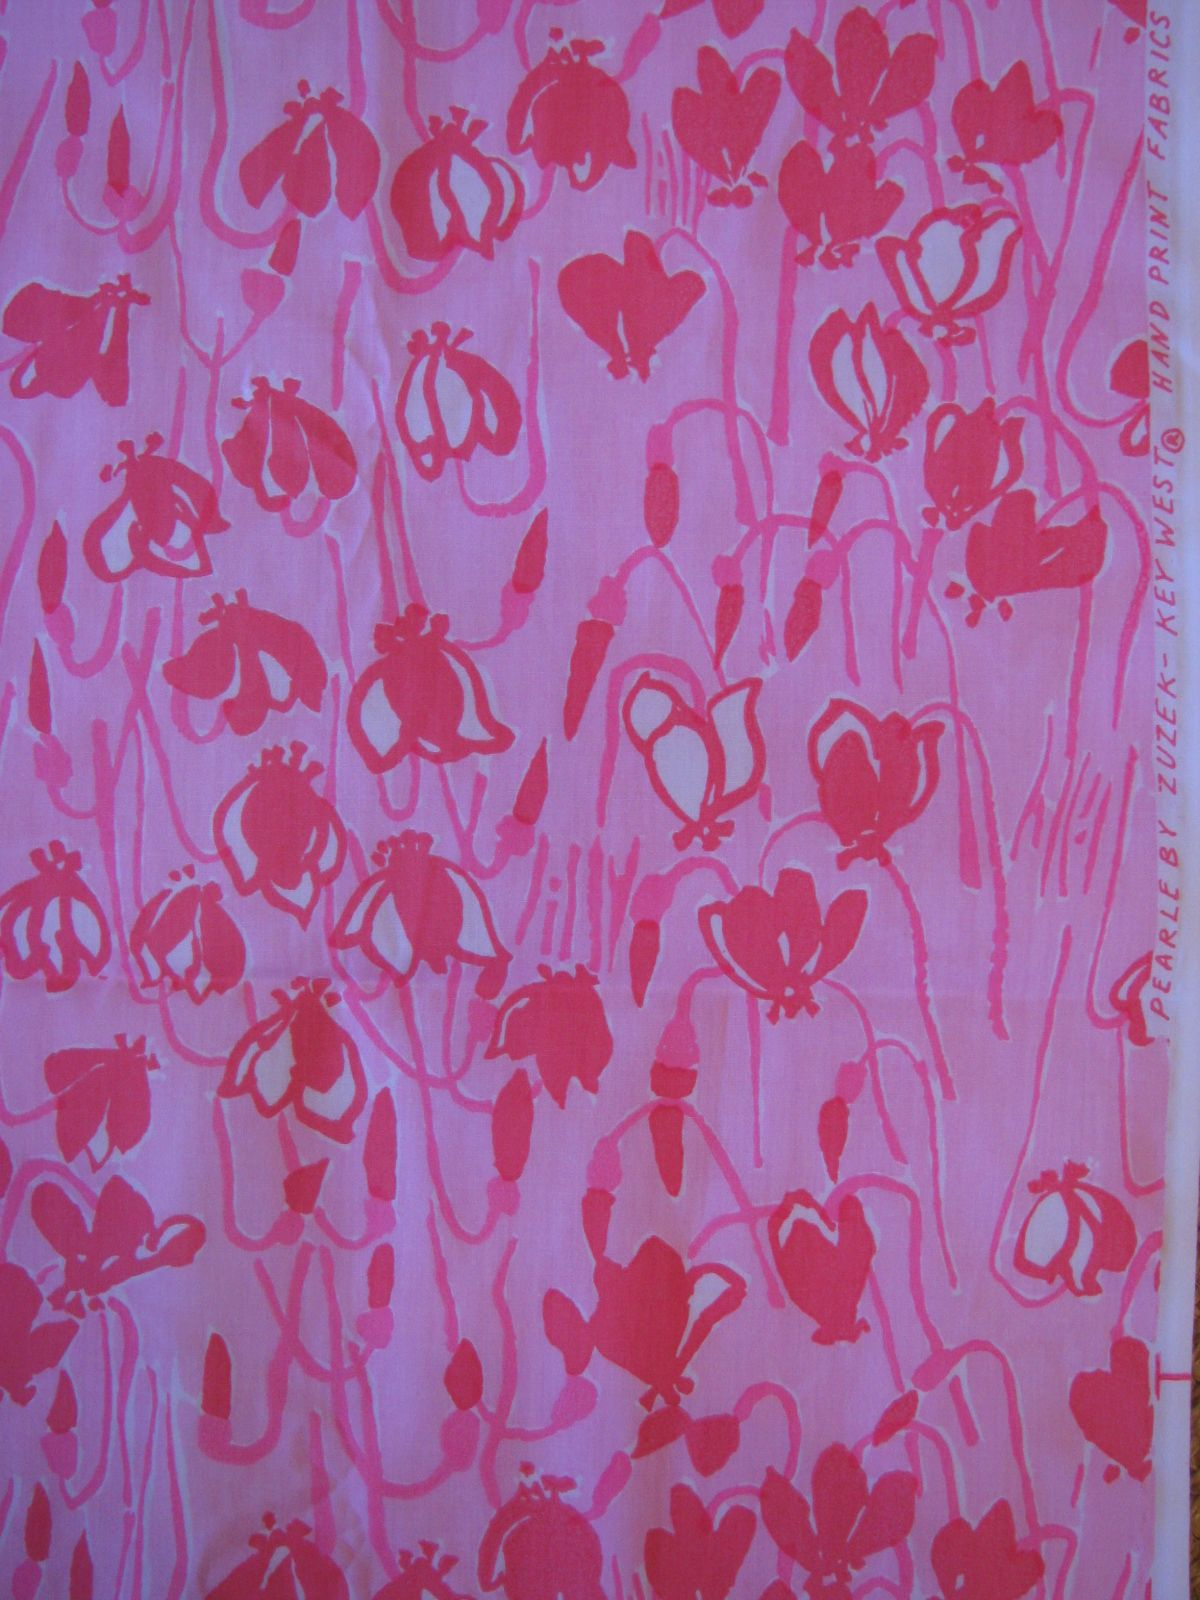 Lilly Pulitzer Fabric Pearle By Zuzek Key West Hand Print Fabrics Vintage Lilly